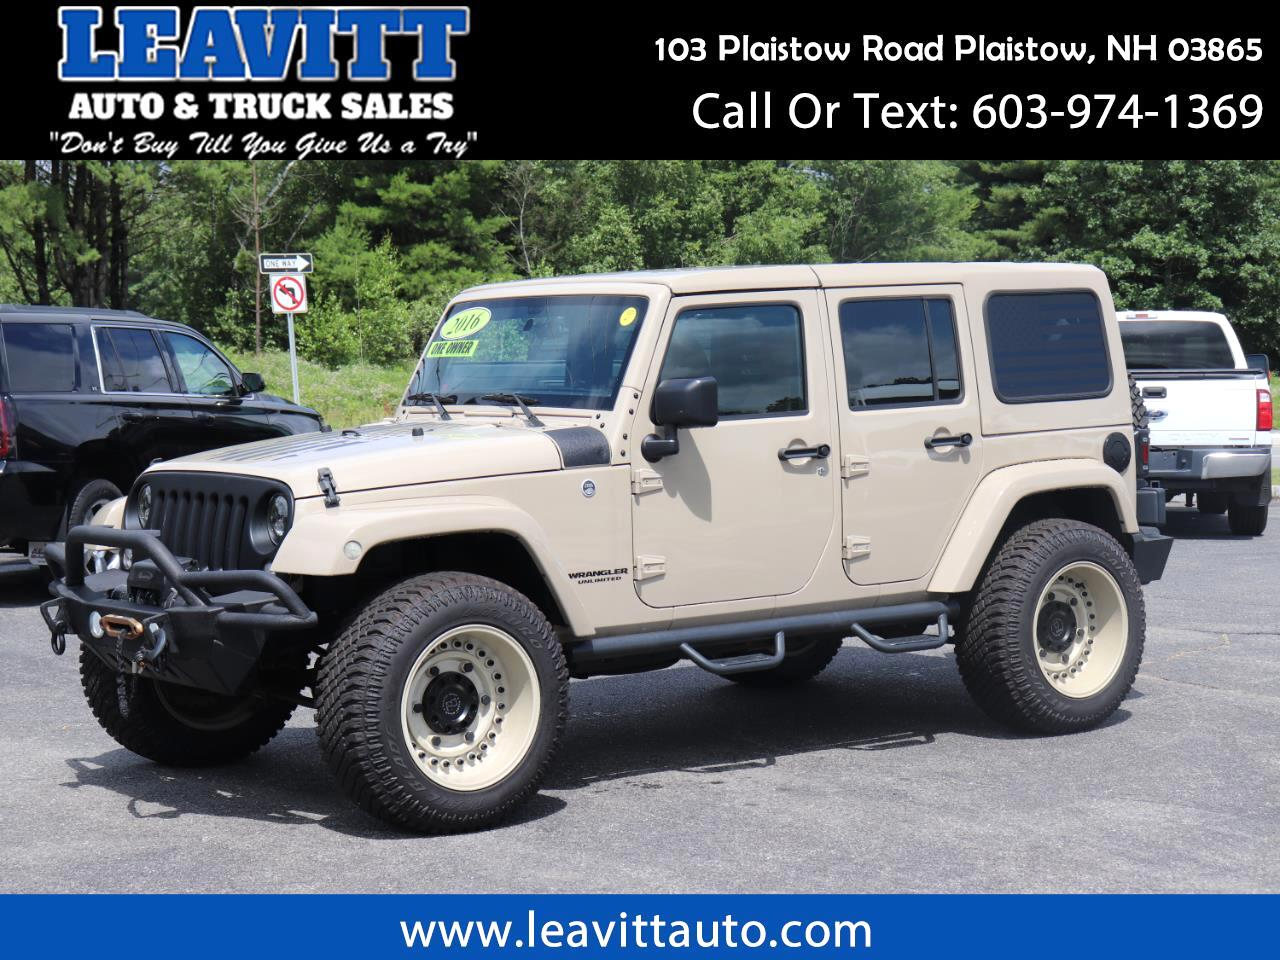 2016 Jeep Wrangler UNLIMITED SPORT 30K MILES THOUSANDS IN EXTRAS!!